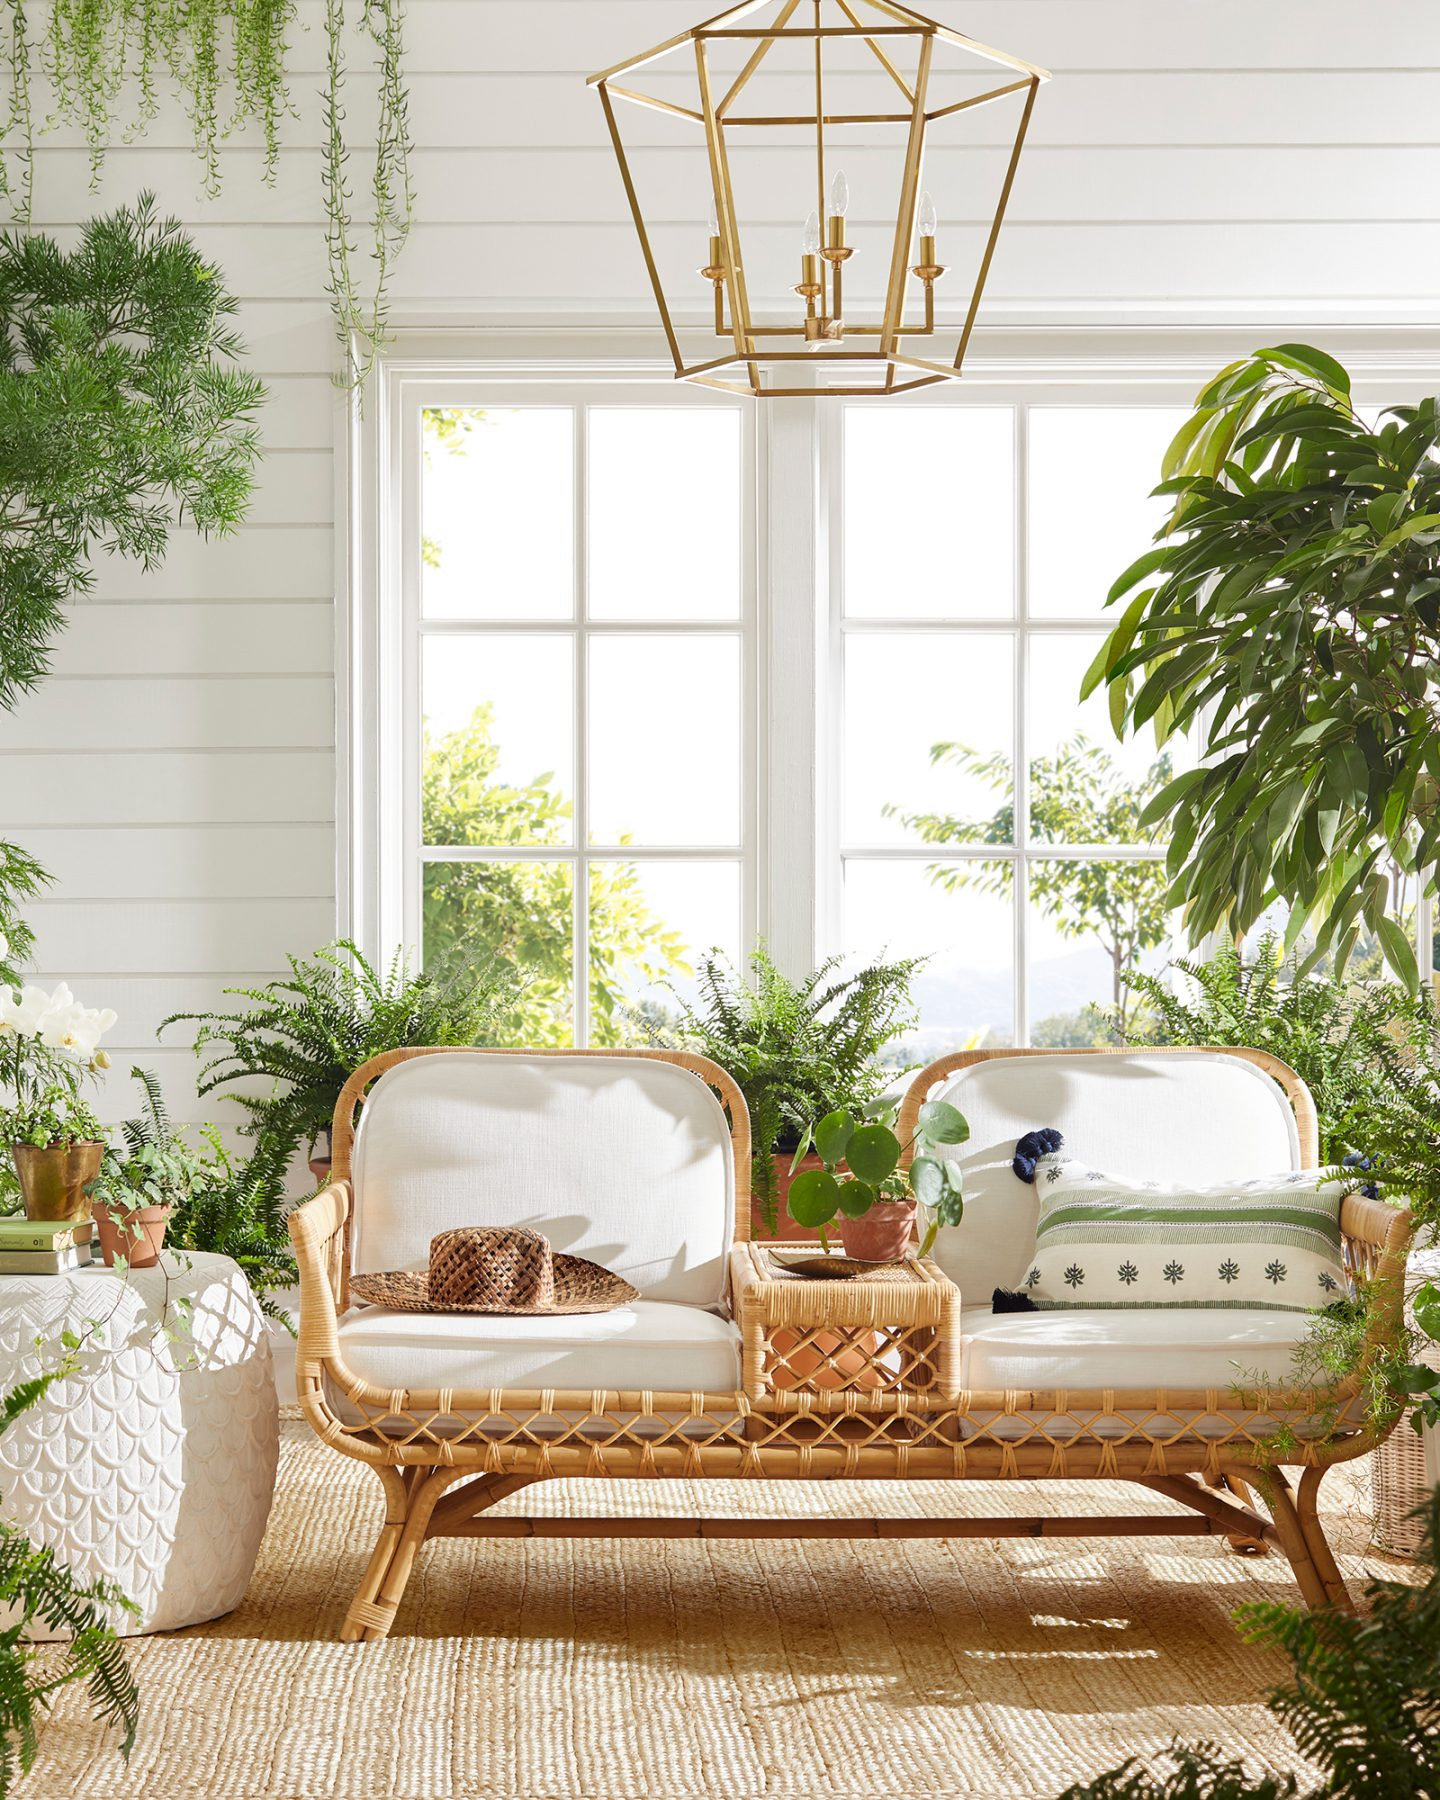 Bohemian stores like Anthropologie home: Serena & Lily